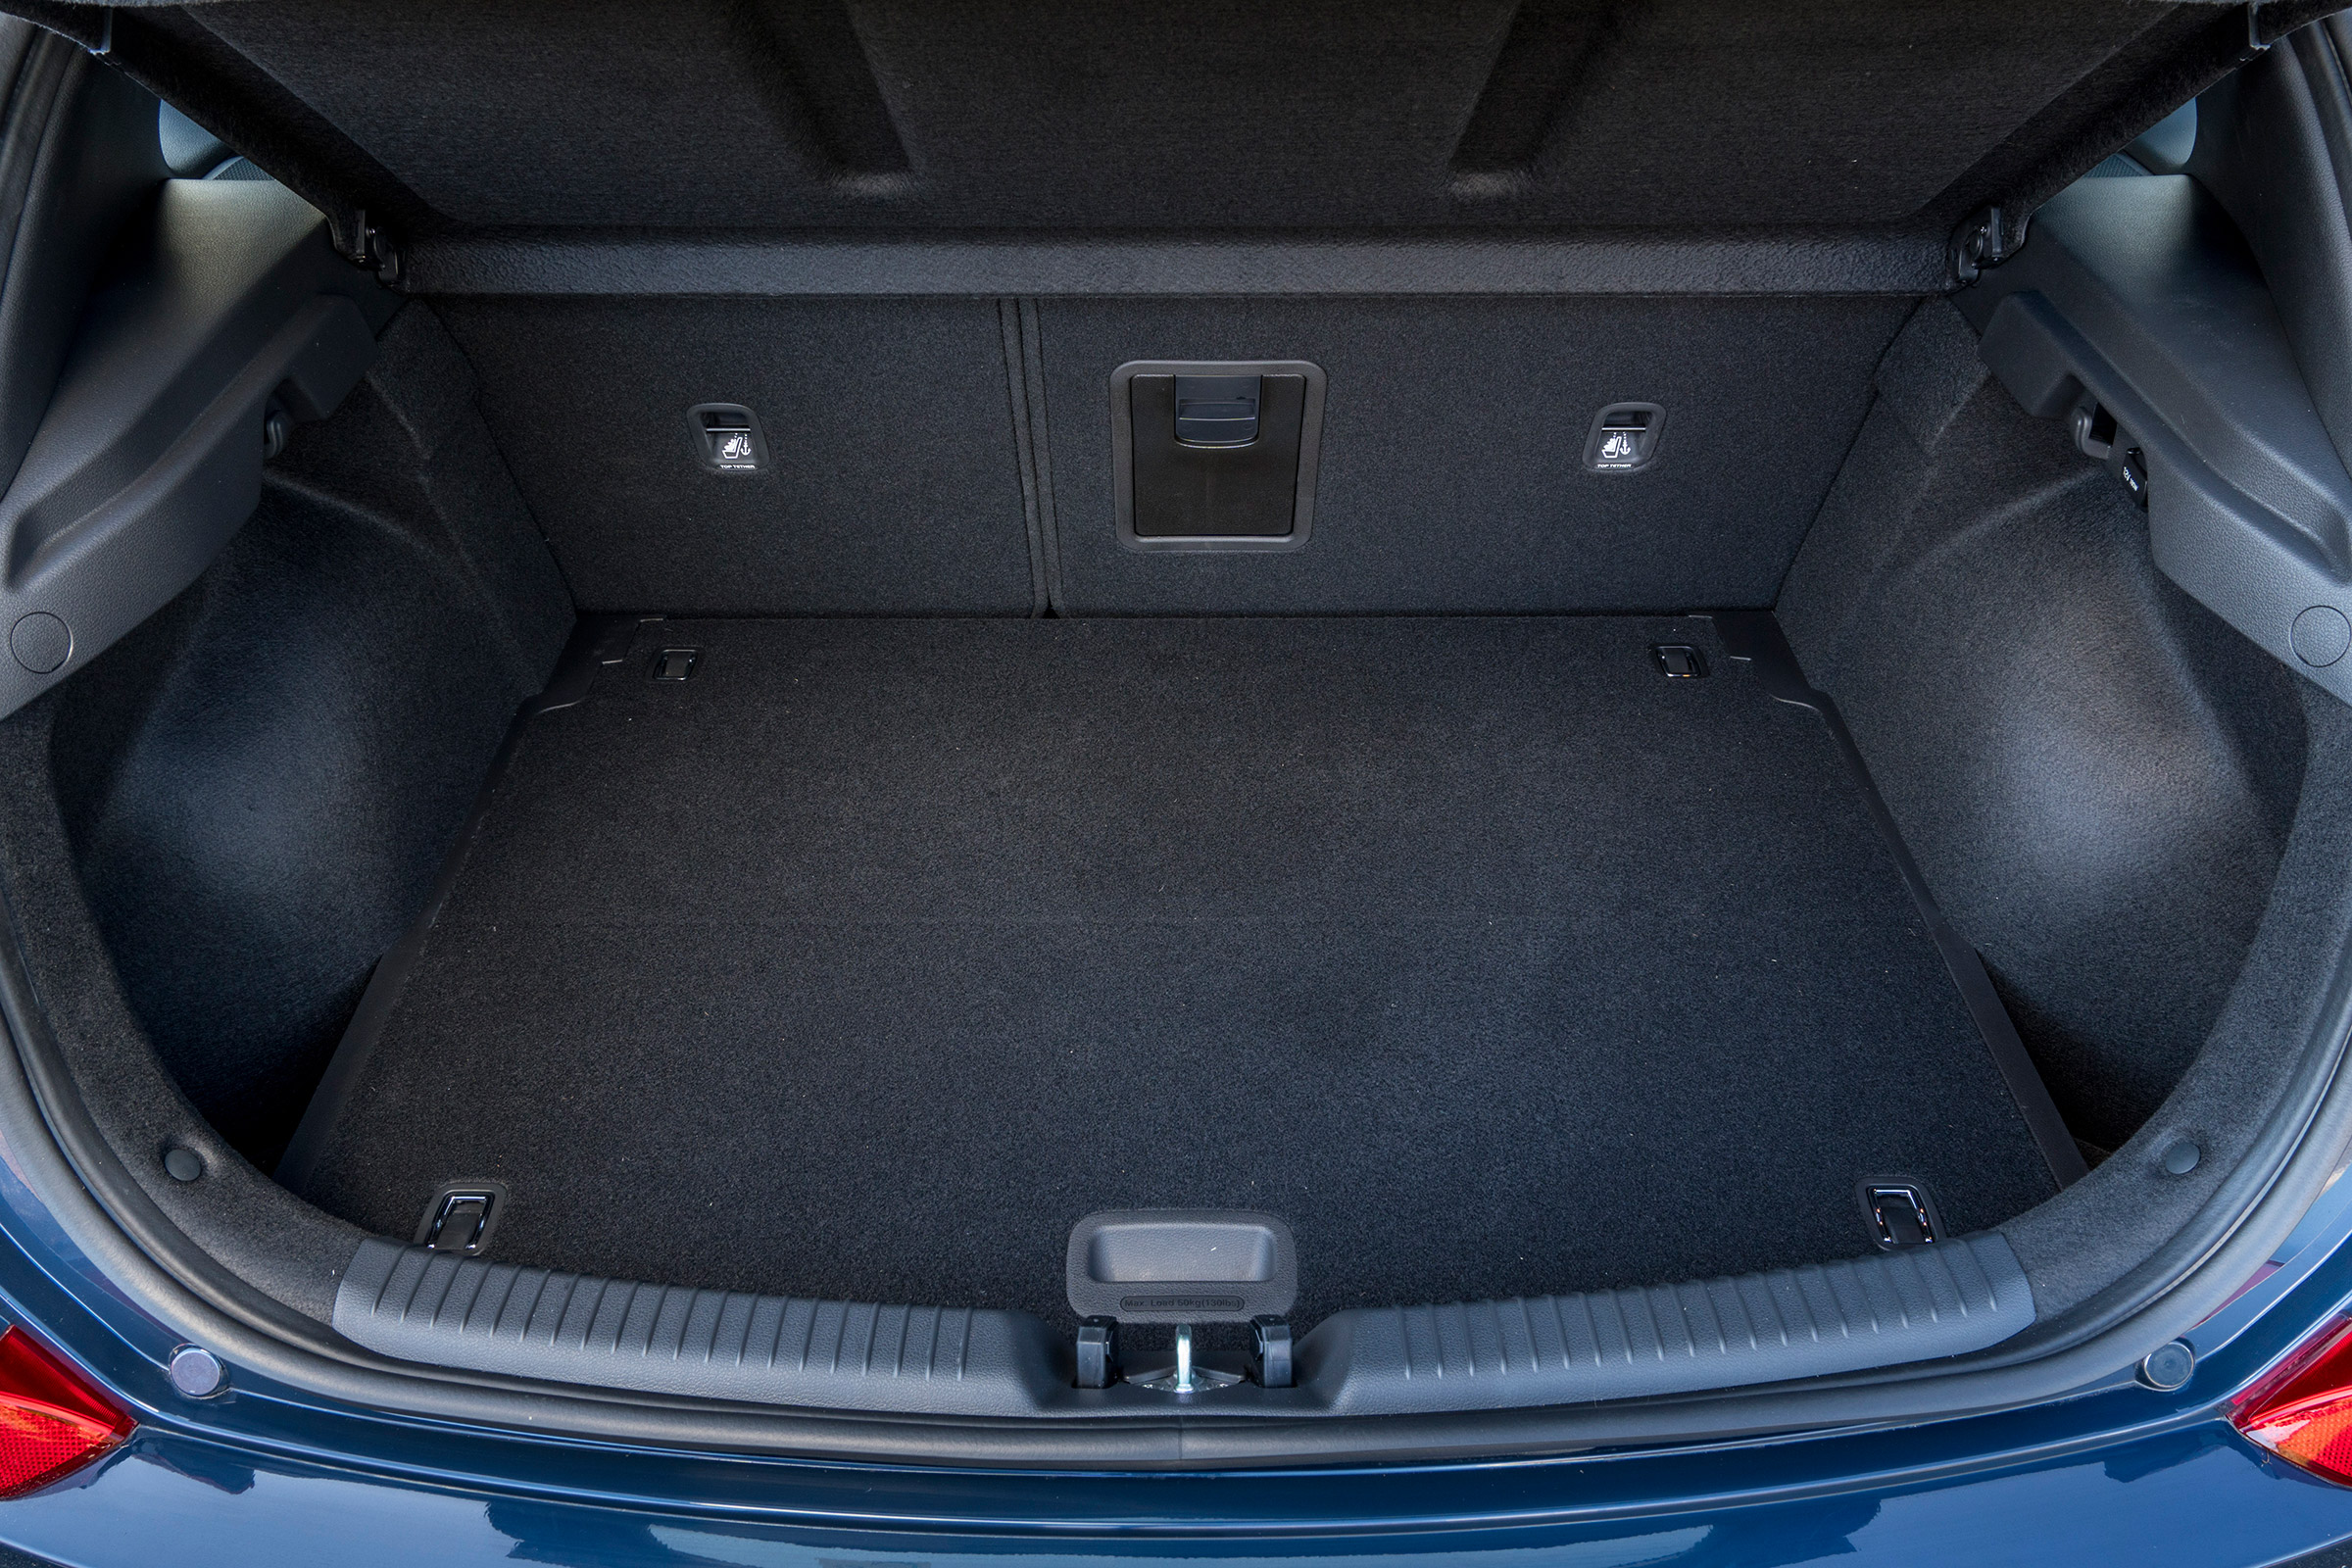 2017 Hyundai I30 Interior View Cargo (Photo 11 of 23)